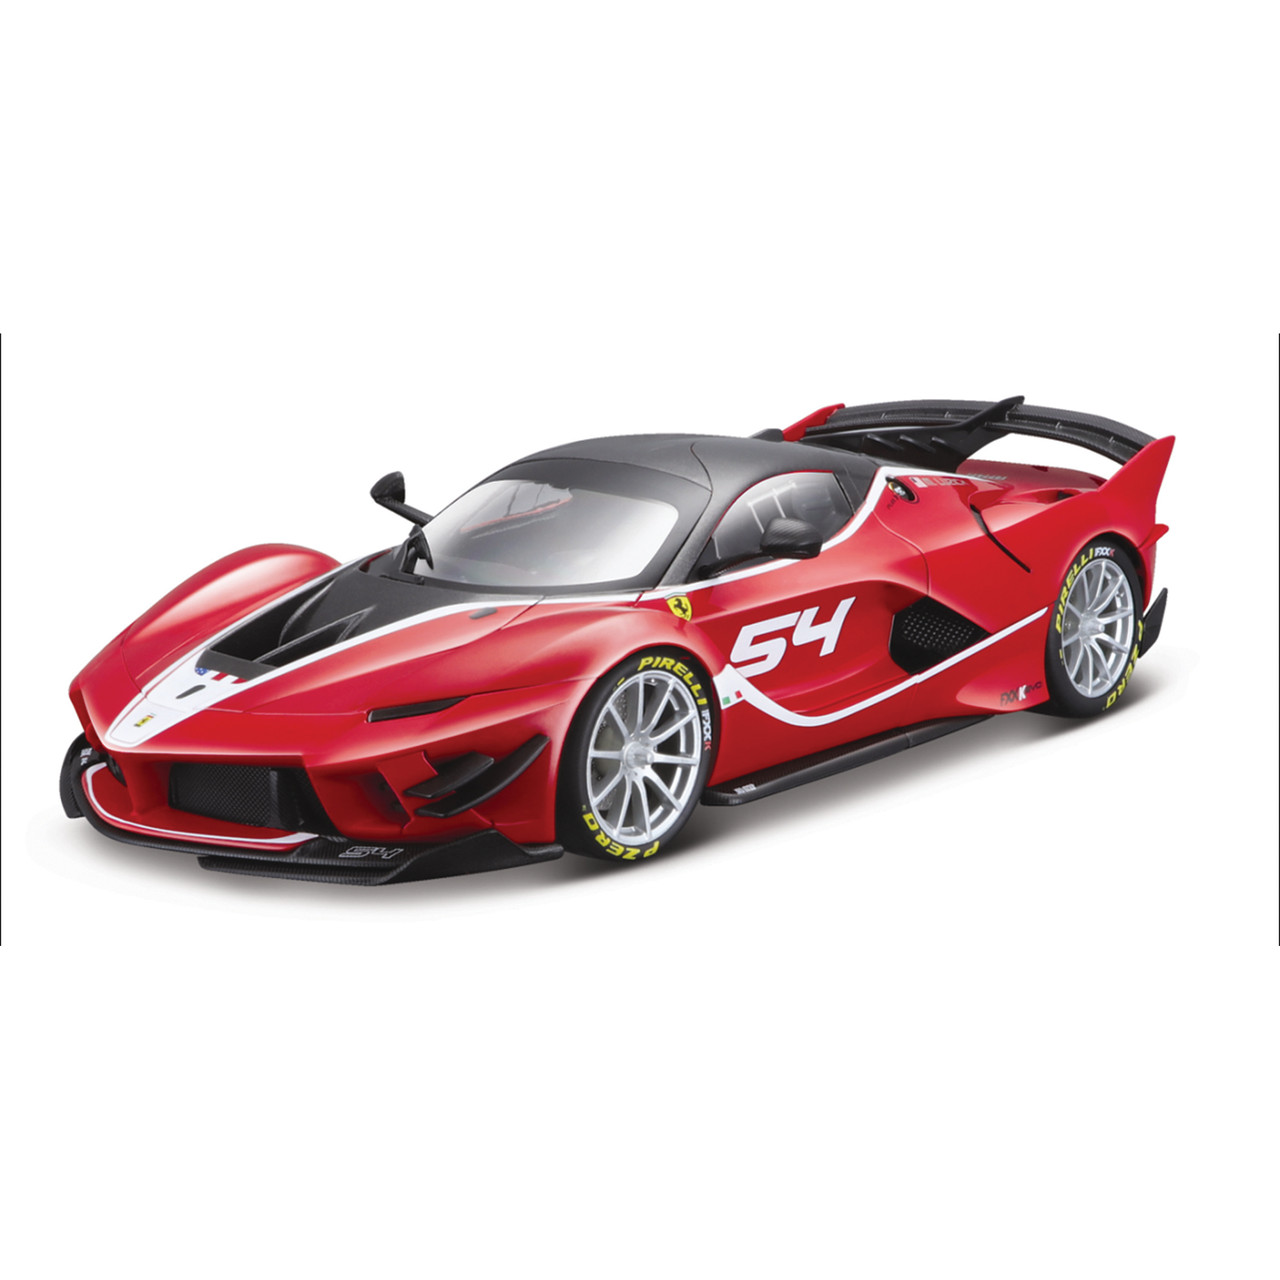 Ferrari Fxx K Evo Red 1 18 Scale Diecast Model By Bburago Fairfield Collectibles The 1 Source For High Quality Diecast Scale Model Cars